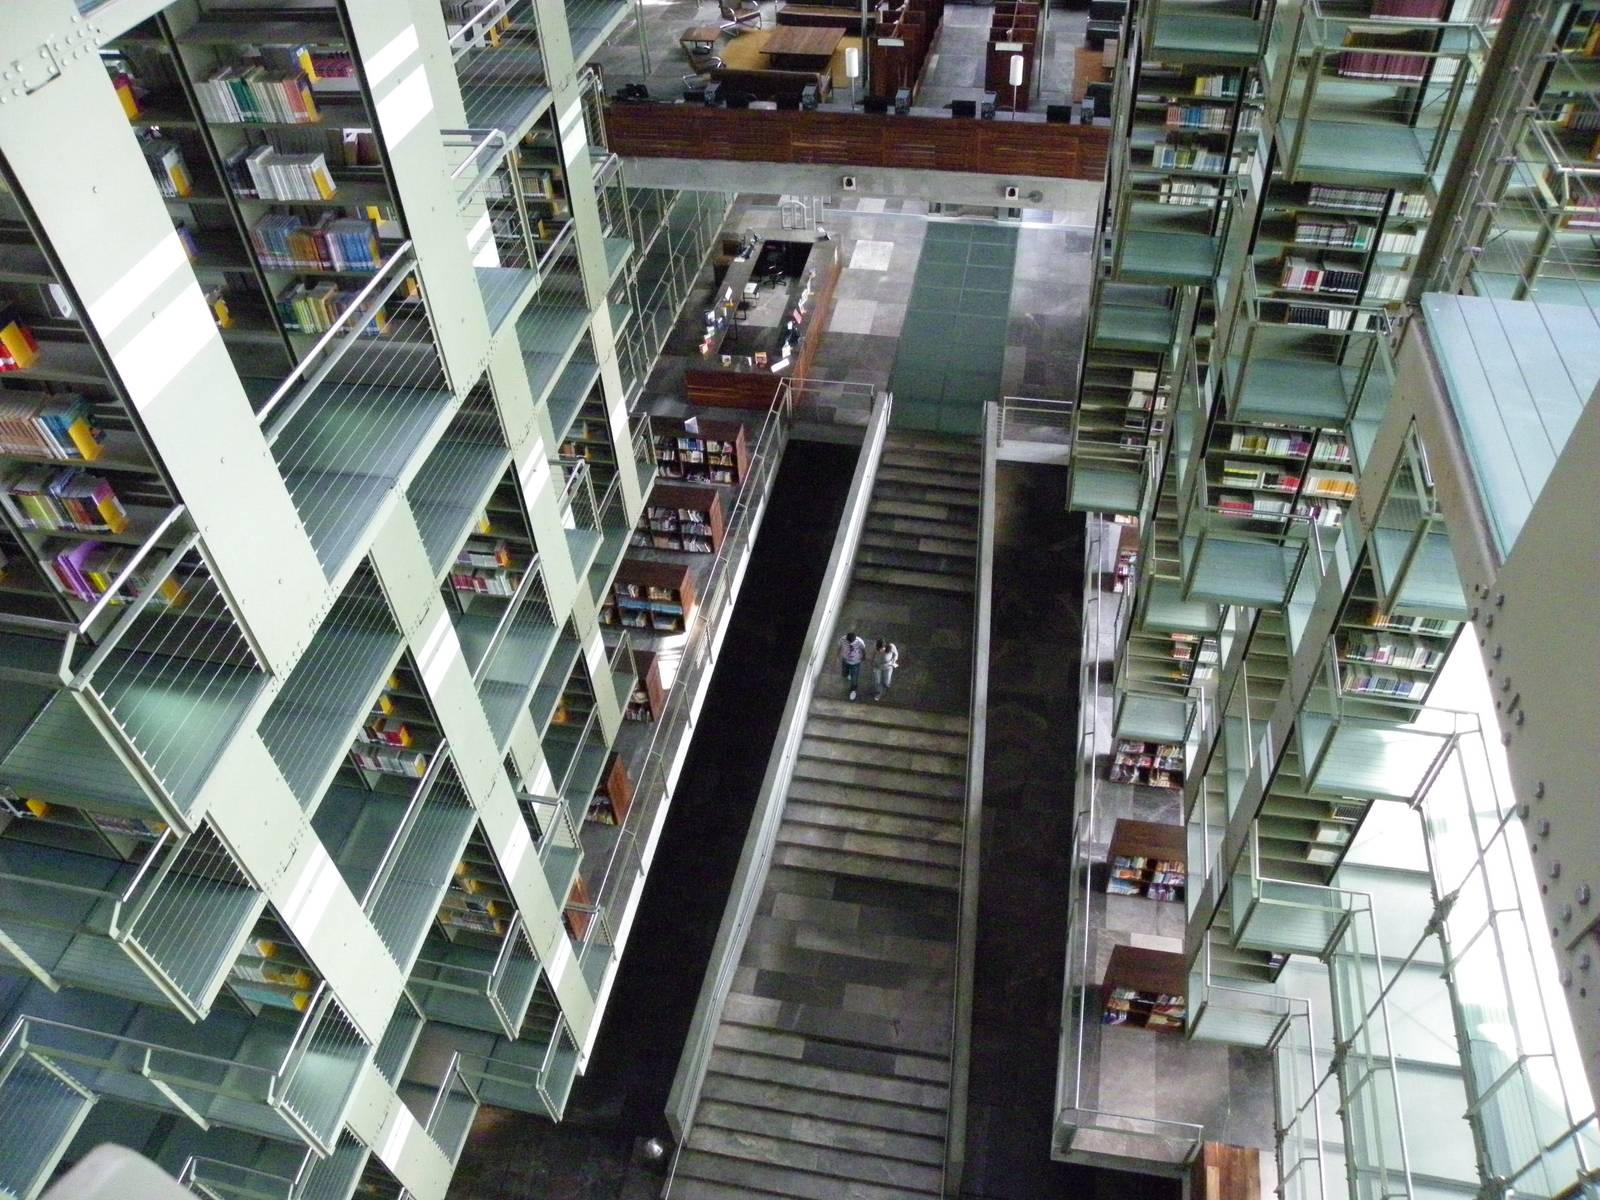 biblioteca vasconcelos2 Biblioteca Vasconcelos   Public Library in Mexico City